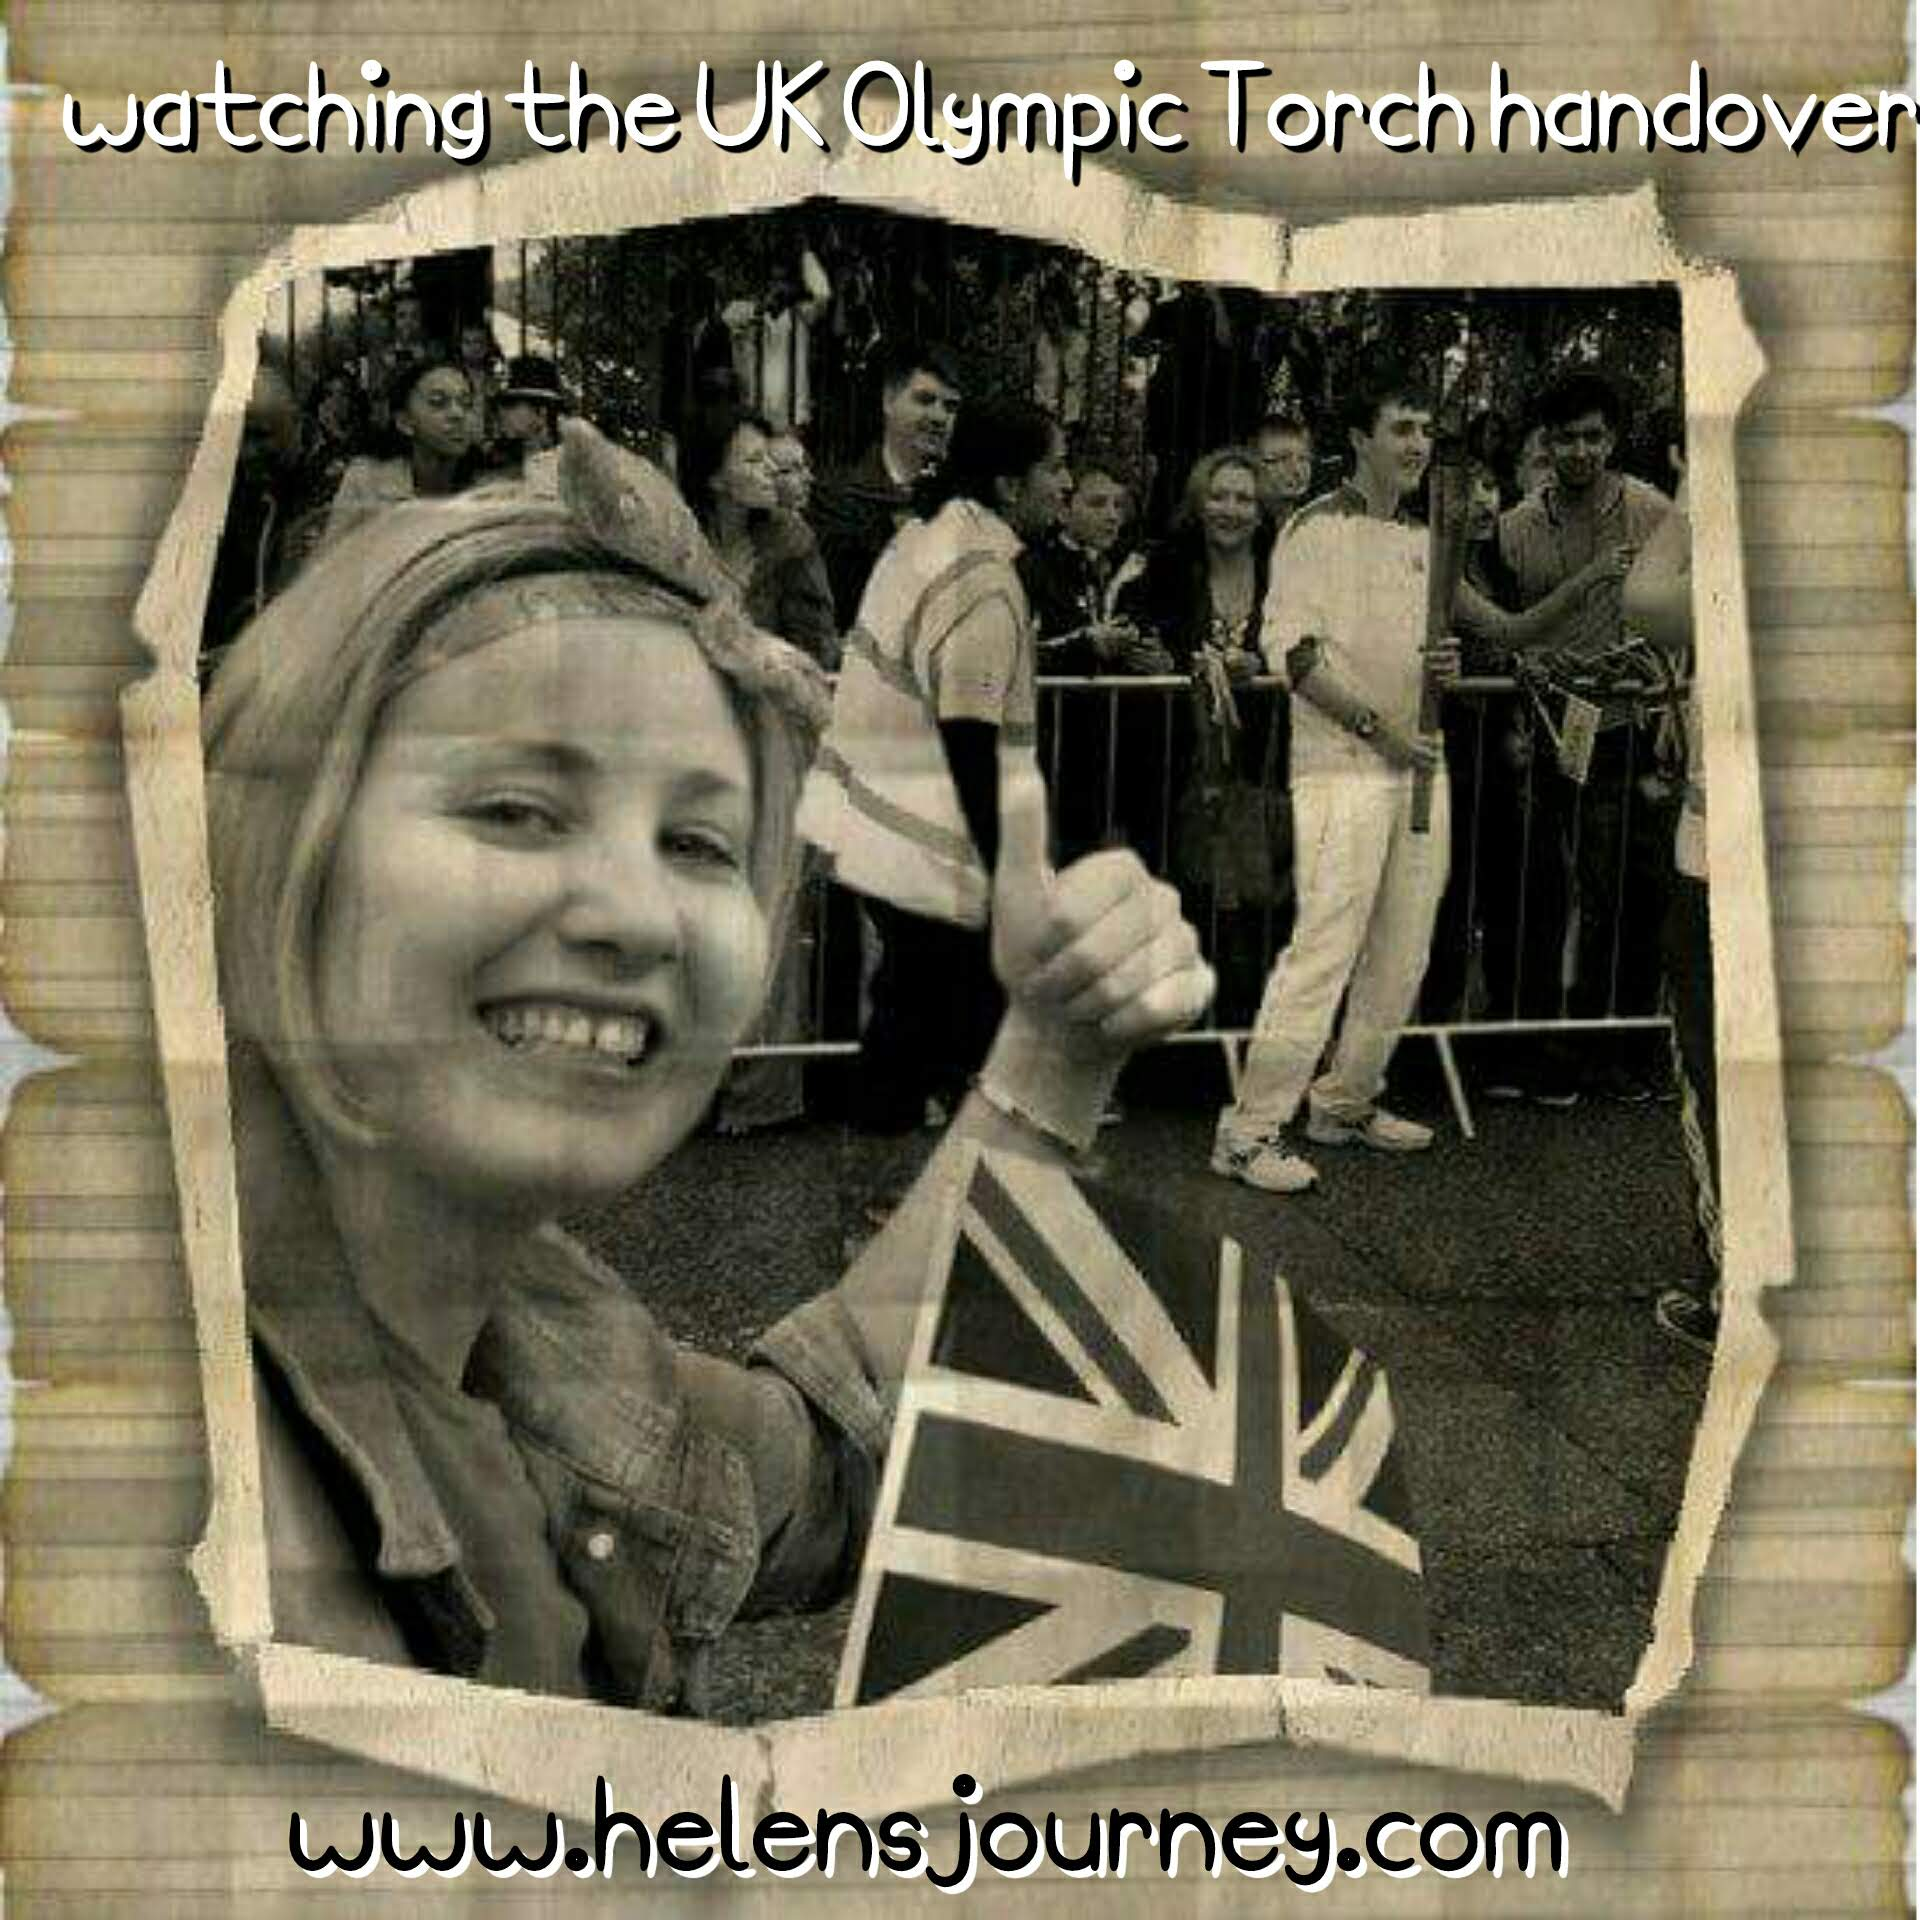 Helen's Journey blog watching the olympic torch handover in UK